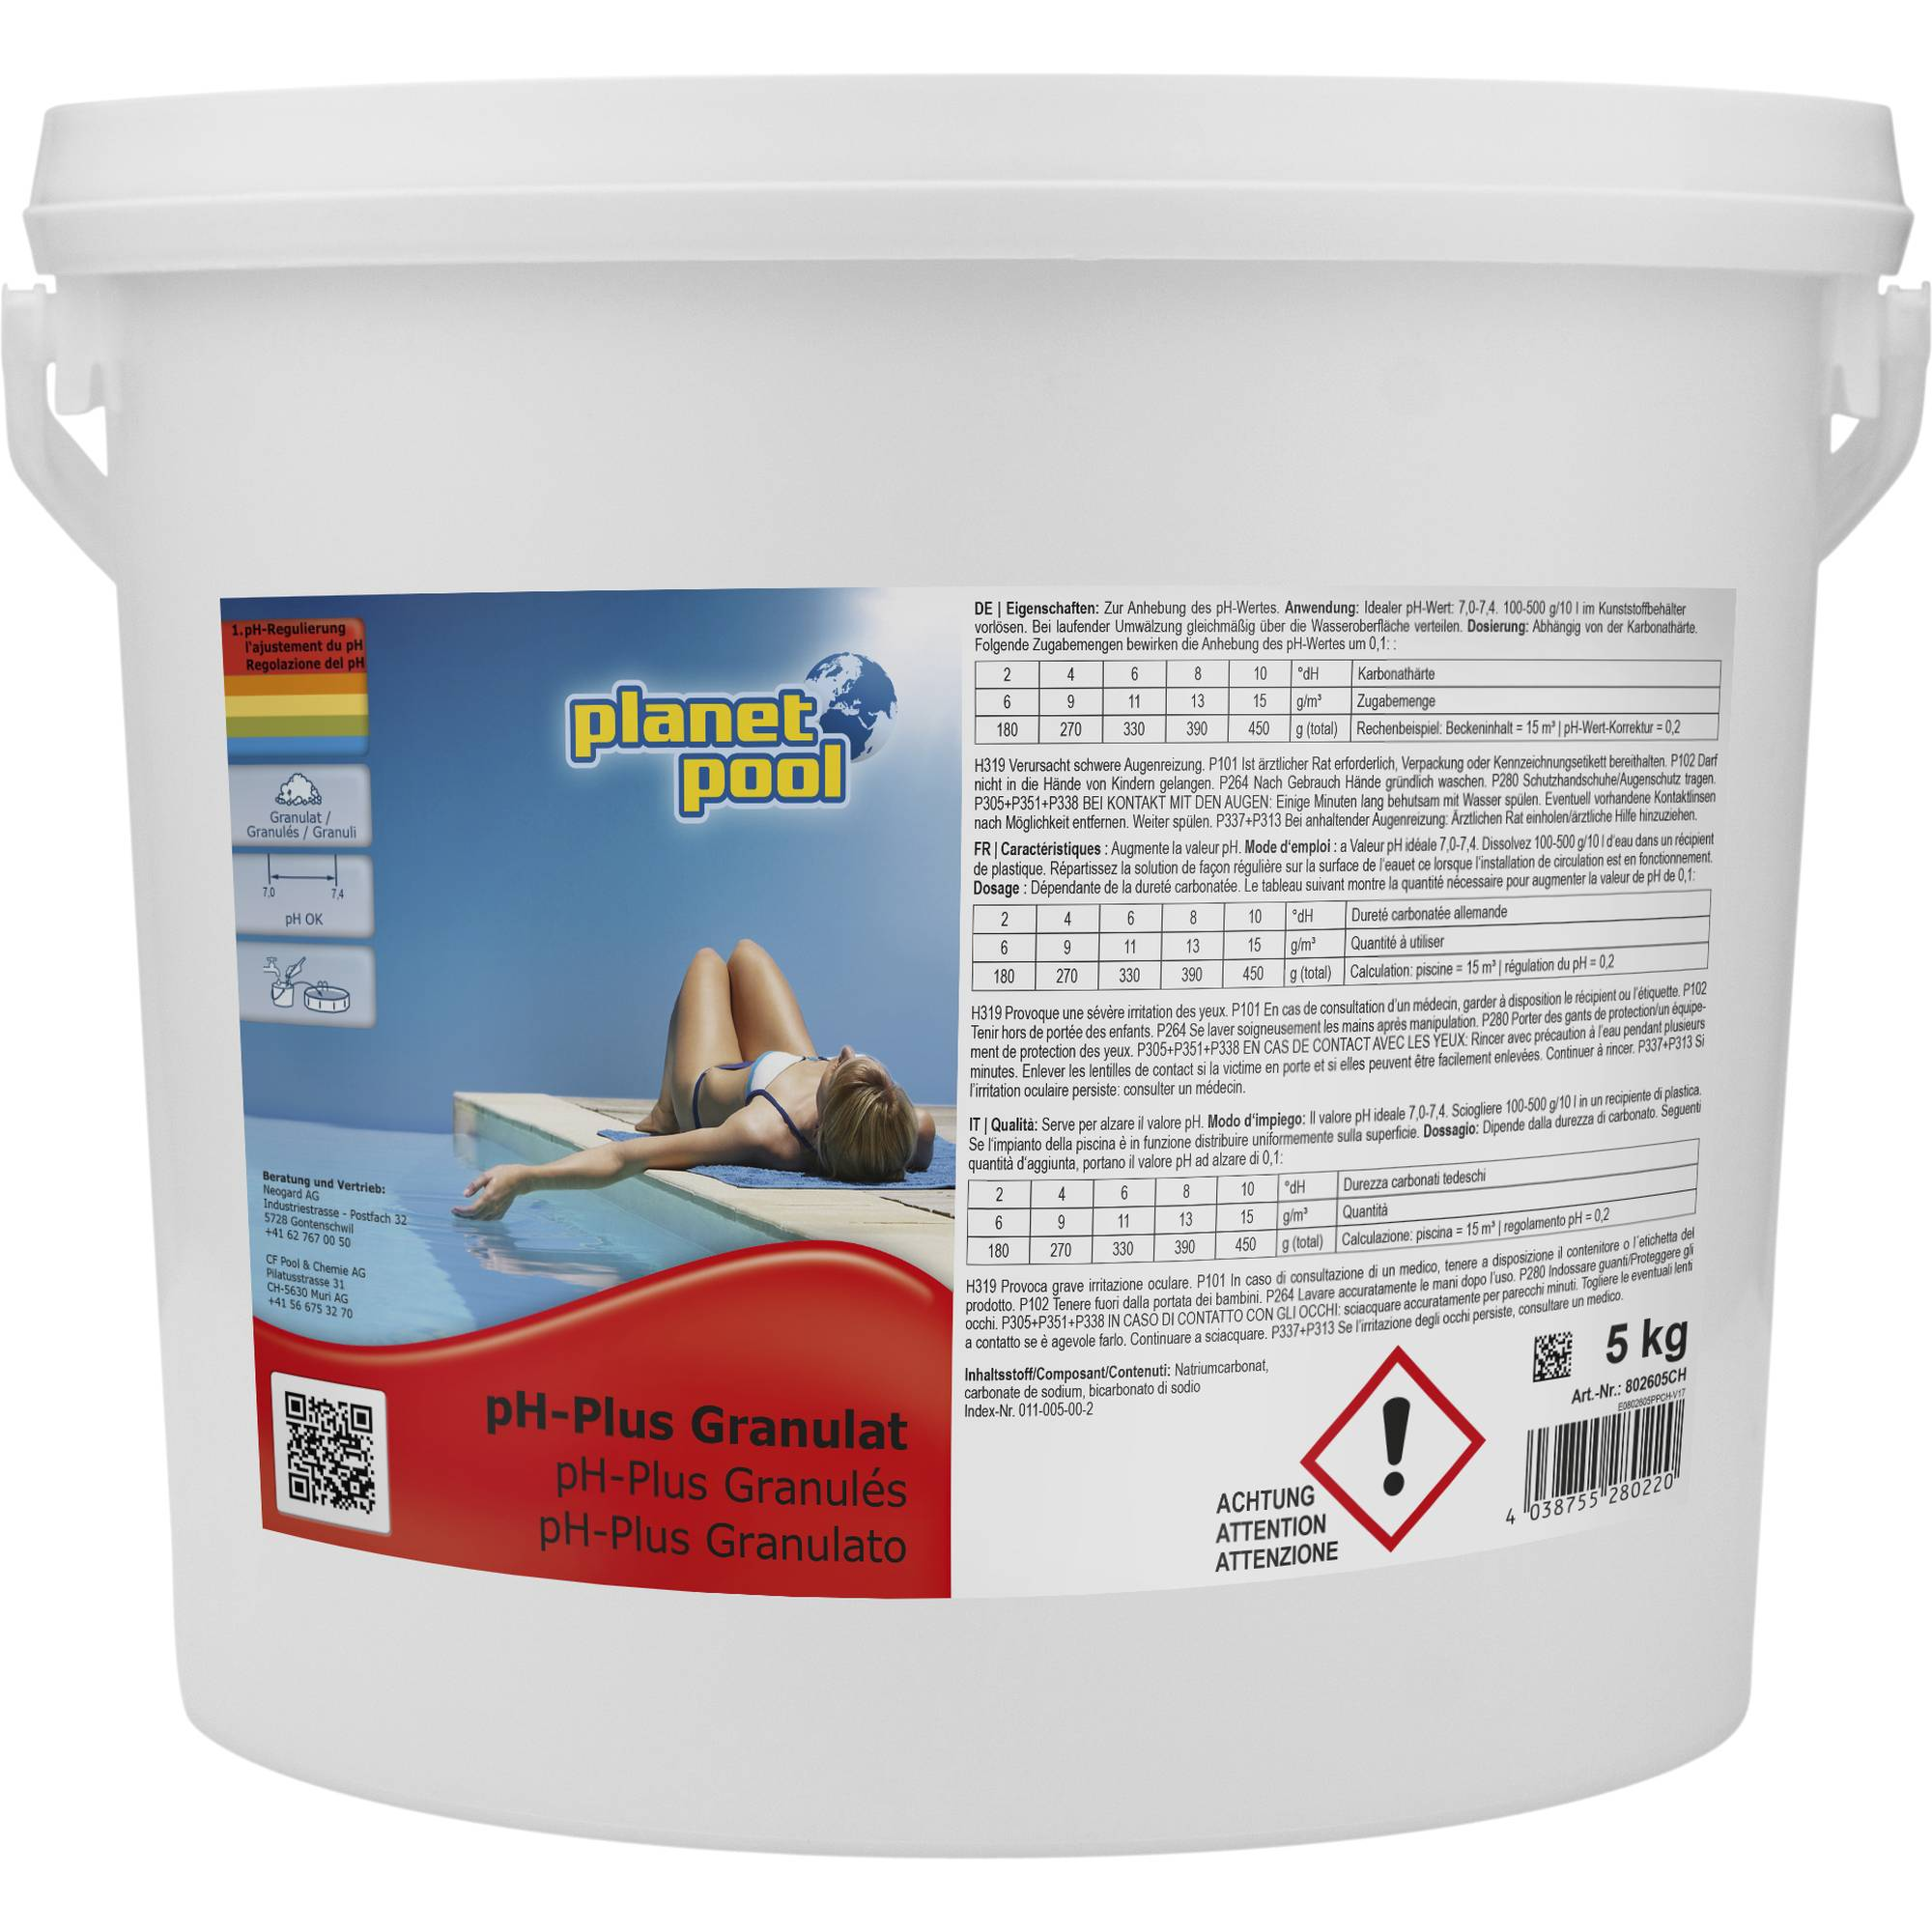 PLANET POOL pH-plus Granulat 5 kg